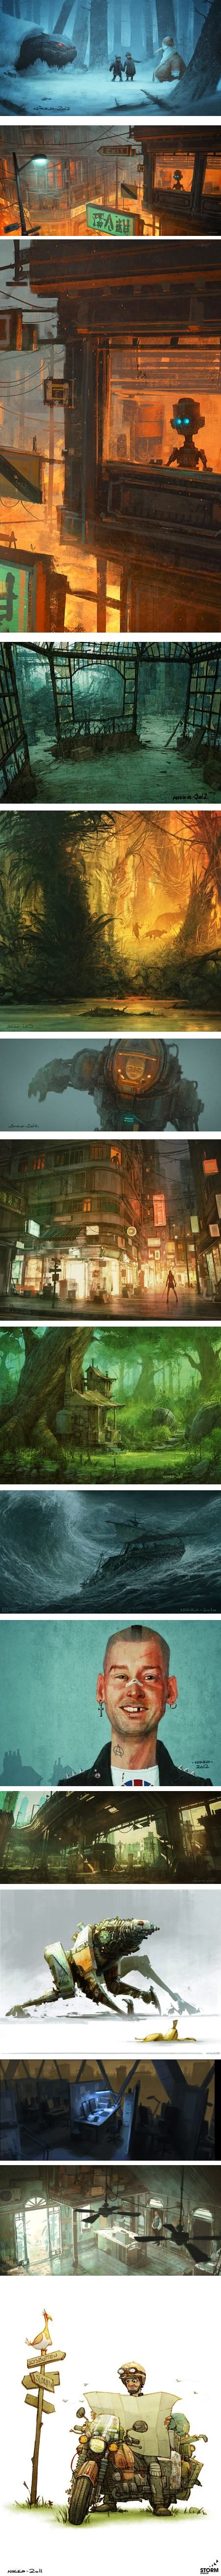 Nikolai Lockertsen, Nikko, art director an visual development artist, Norway